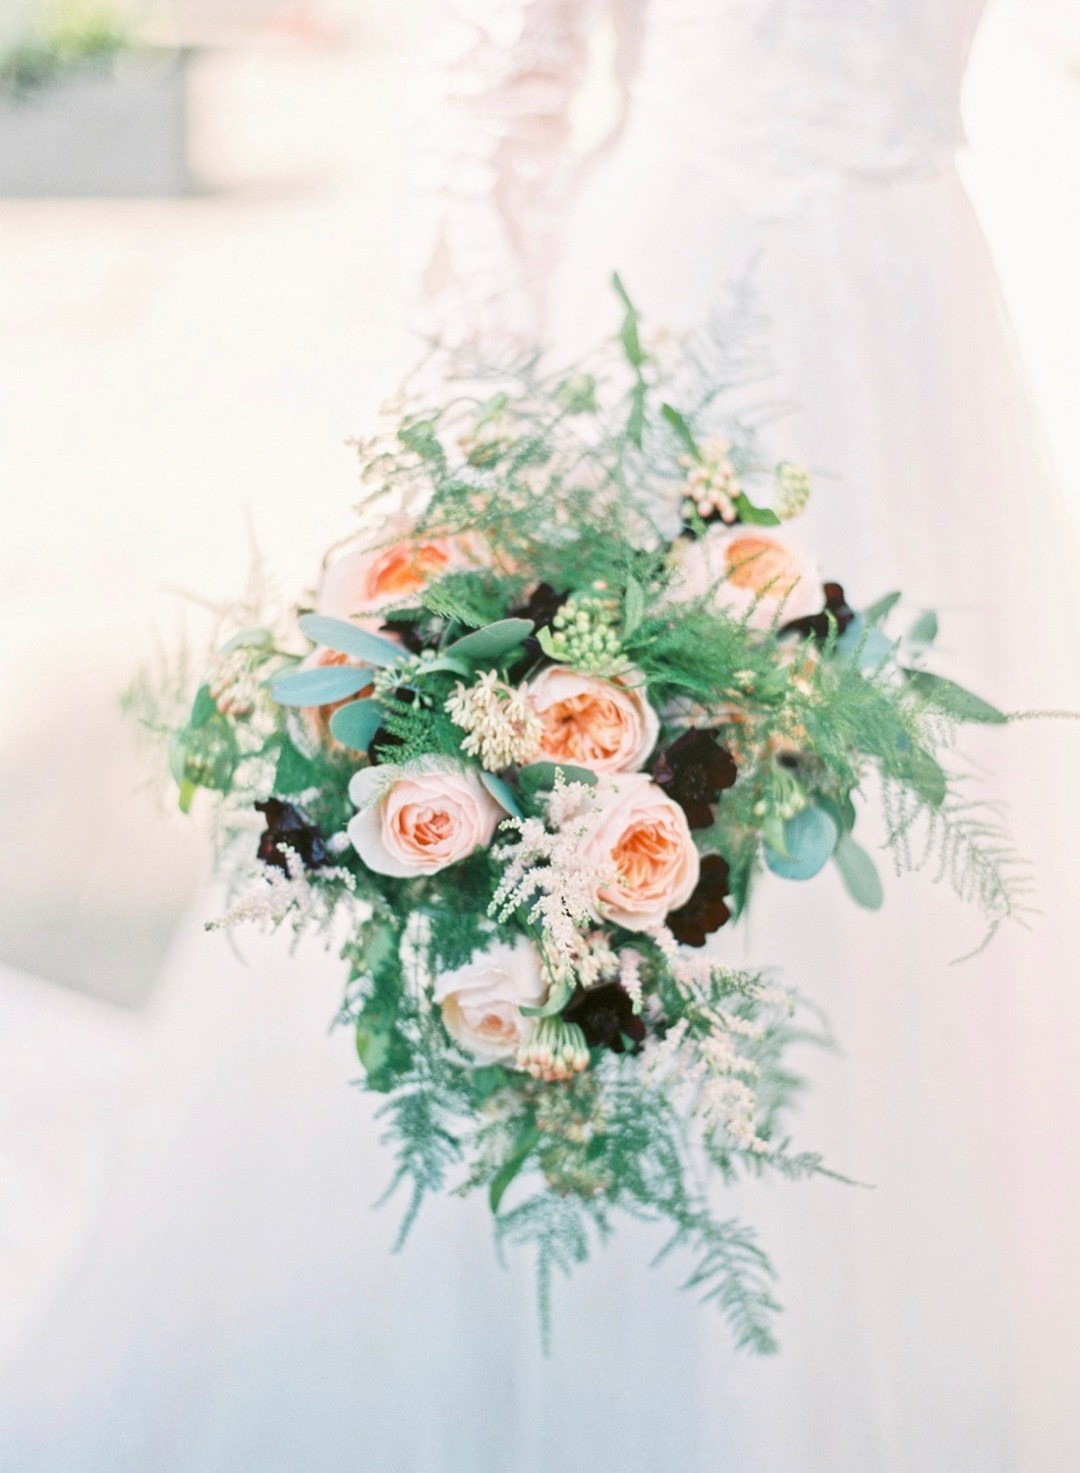 Elegant peach coloured wedding flowers